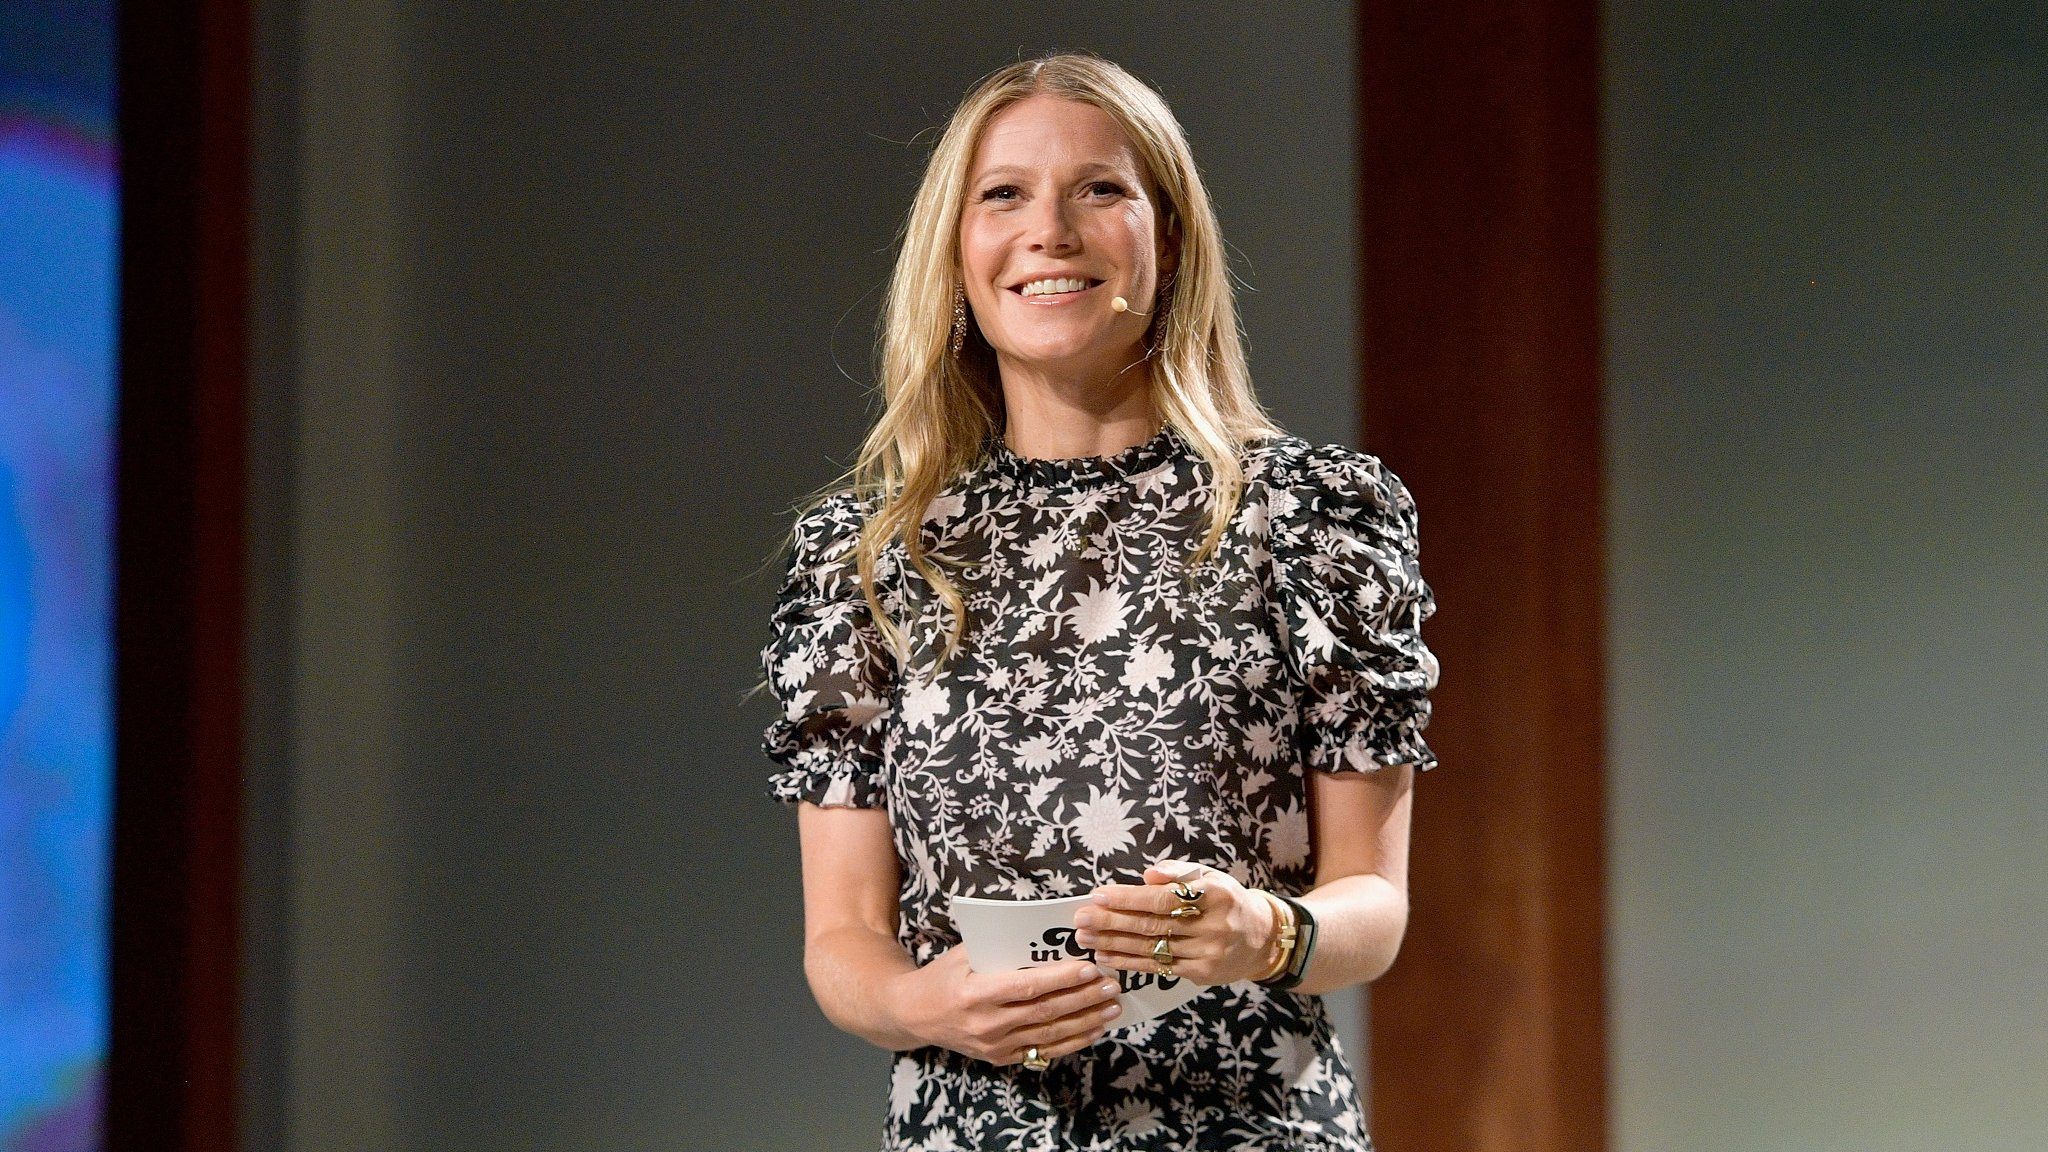 Gwyneth Paltrow brings Goop to the UK